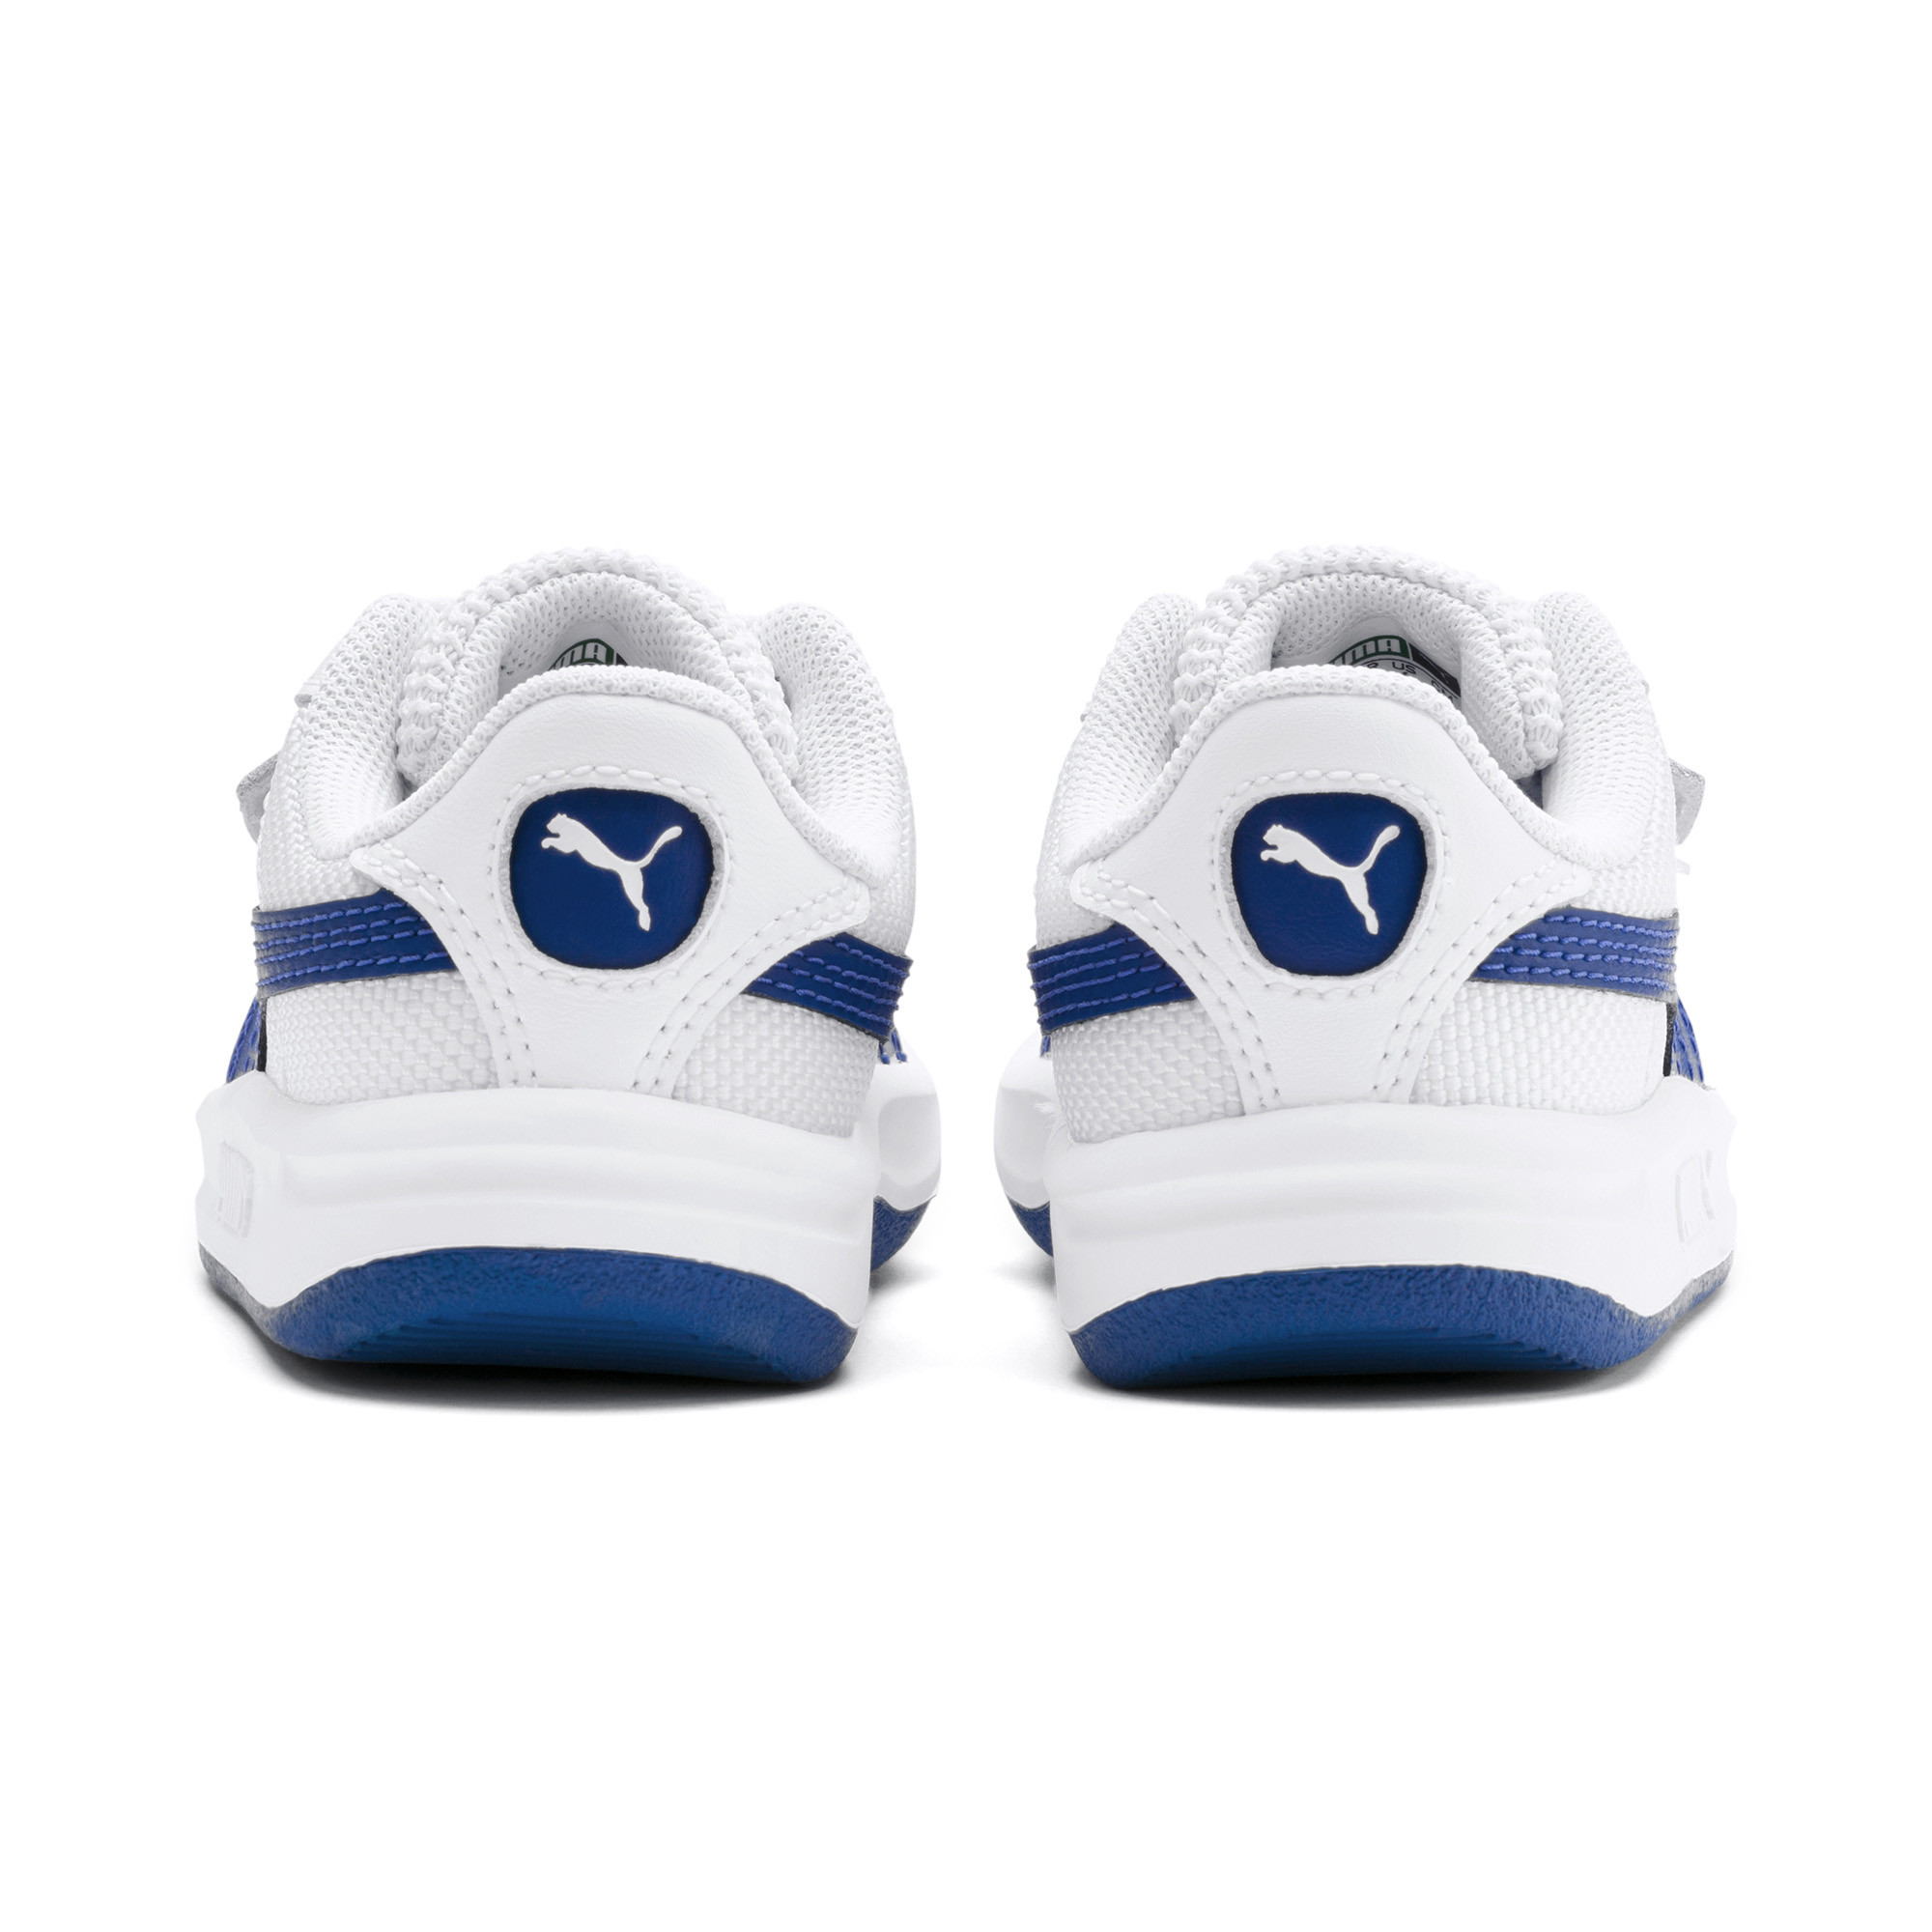 PUMA-California-Toddler-Shoes-Kids-Shoe-Kids thumbnail 3